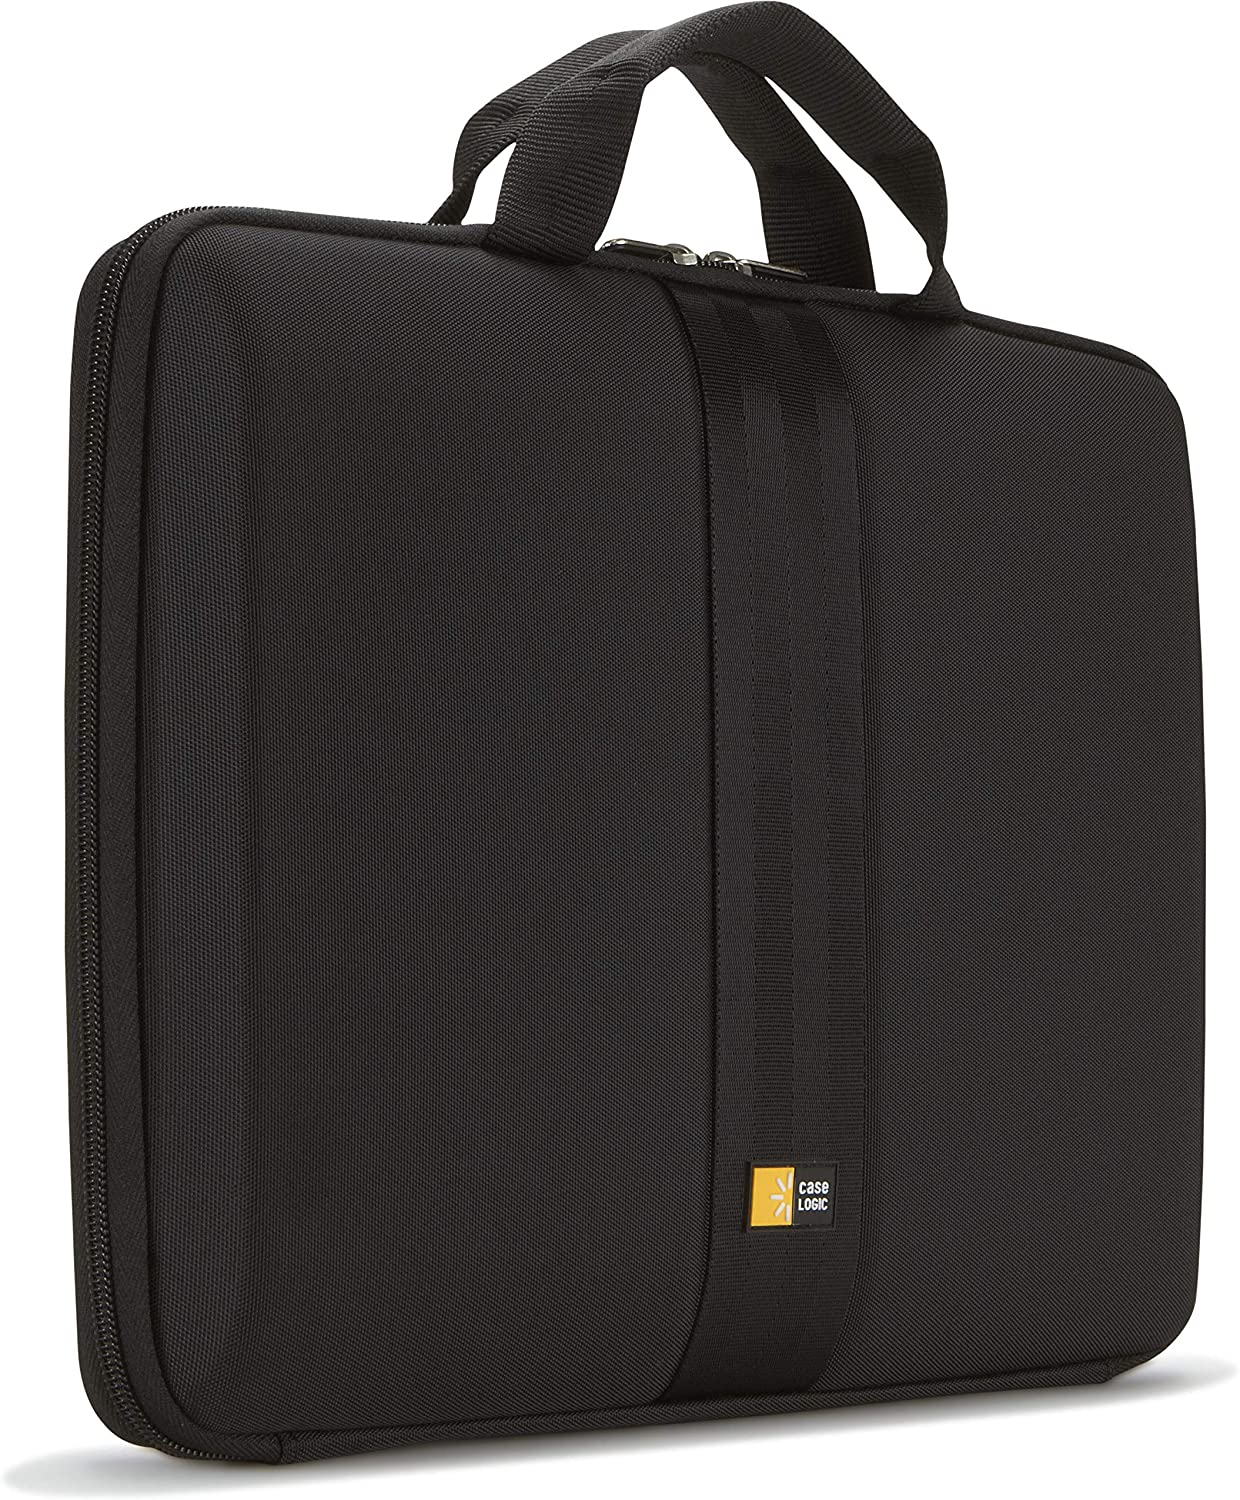 "Case Logic 13.3"" Molded Laptop Sleeve (QNS-113-BLACK)"